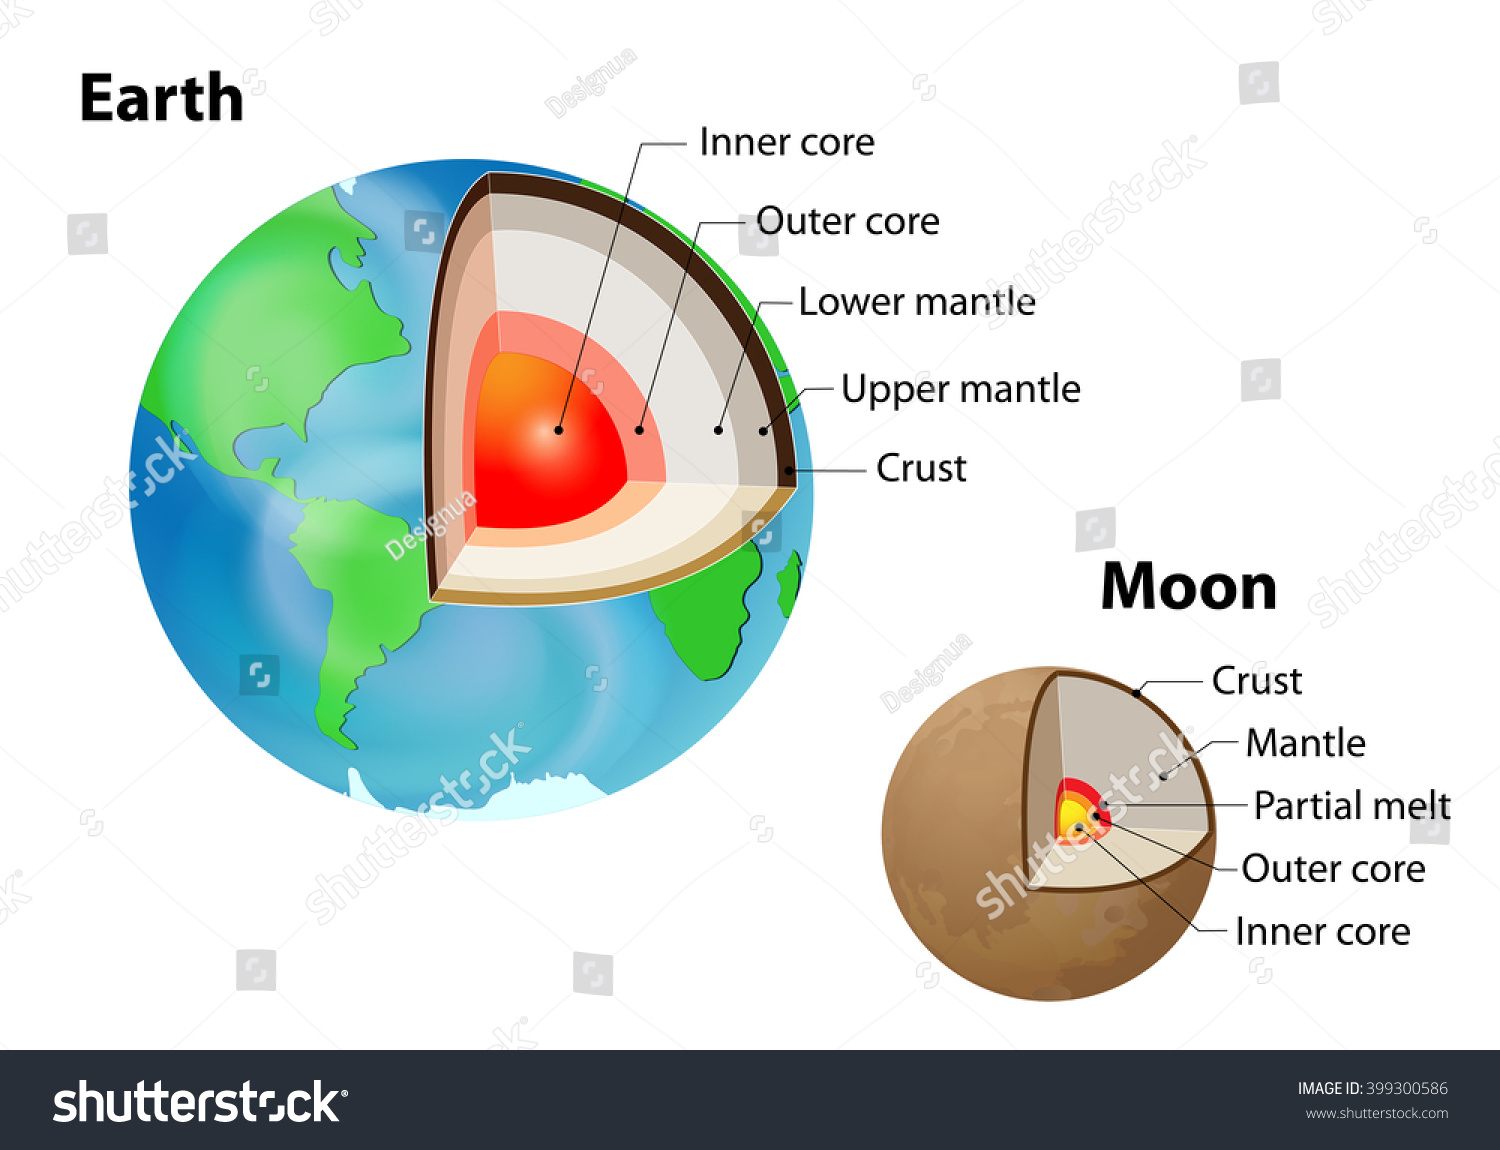 hight resolution of crust upper mantle lower mantle outer core and